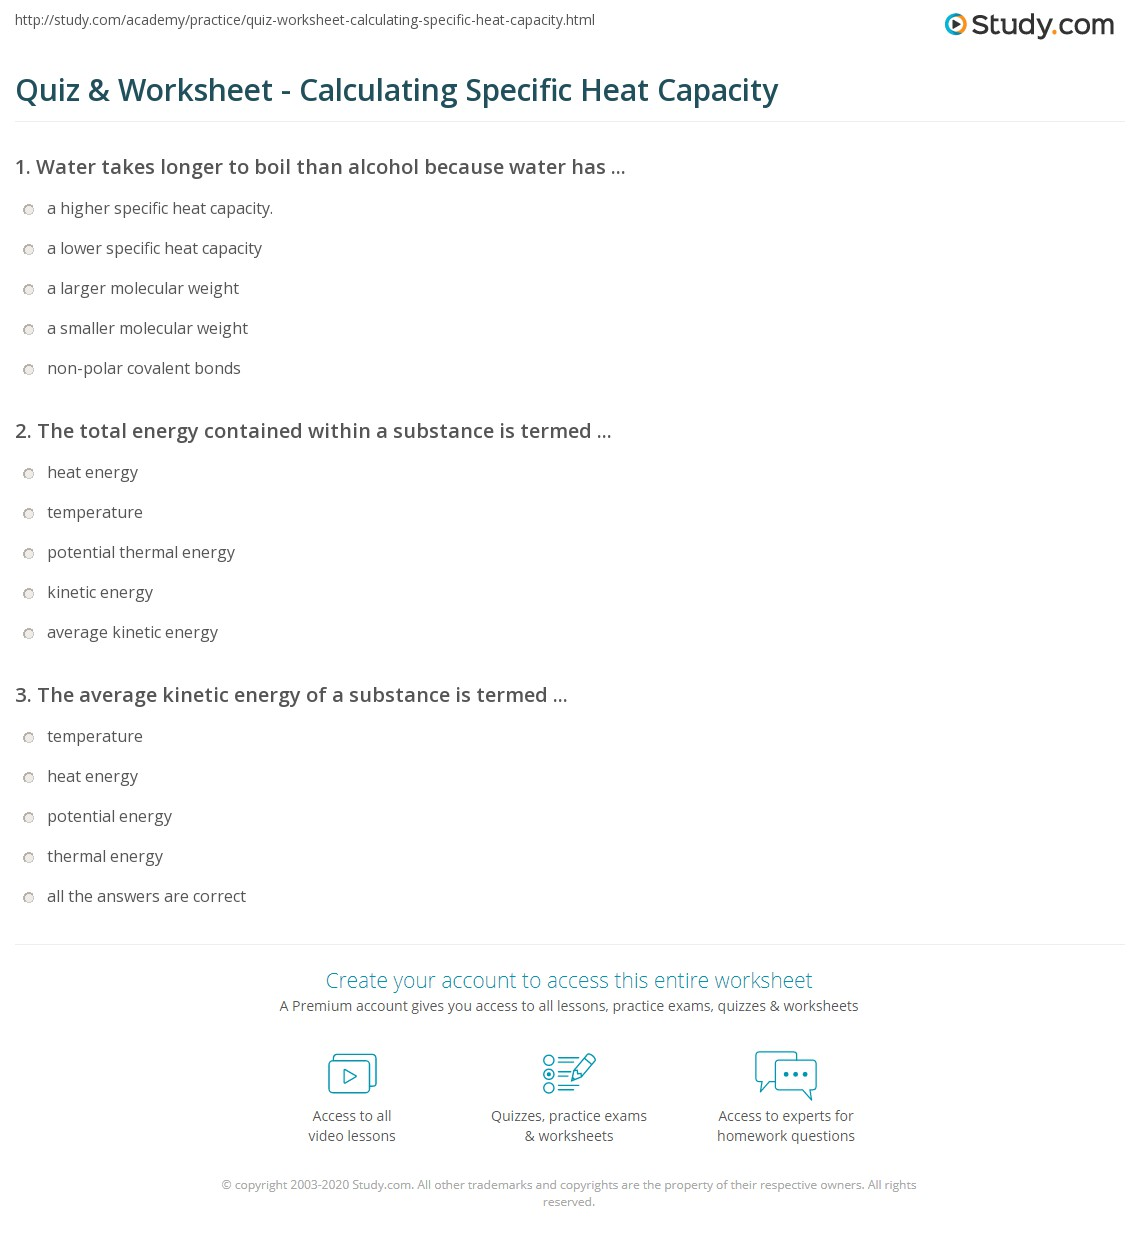 Quiz & Worksheet - Calculating Specific Heat Capacity | Study.com